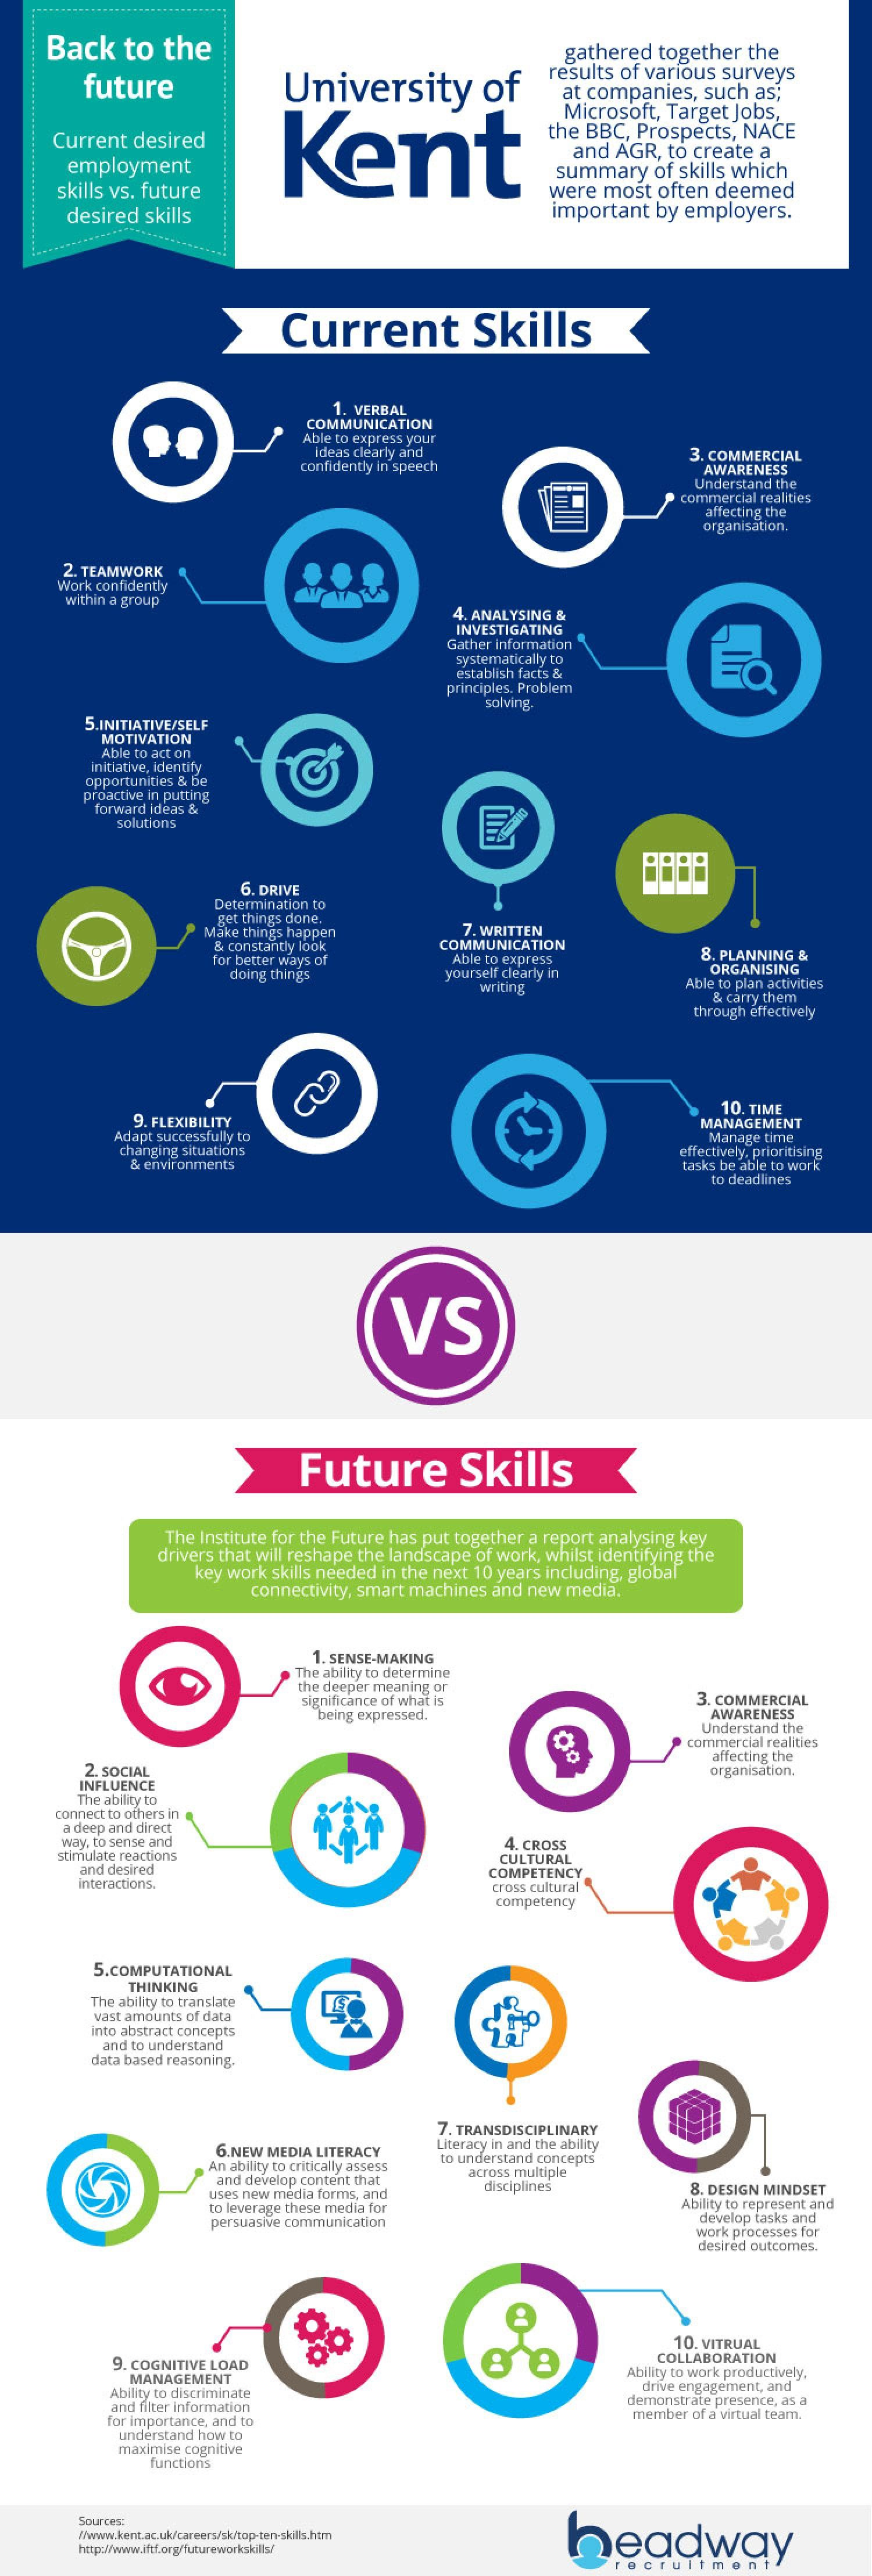 Back To The Future Jobs! Current Vs. Future Desired Job